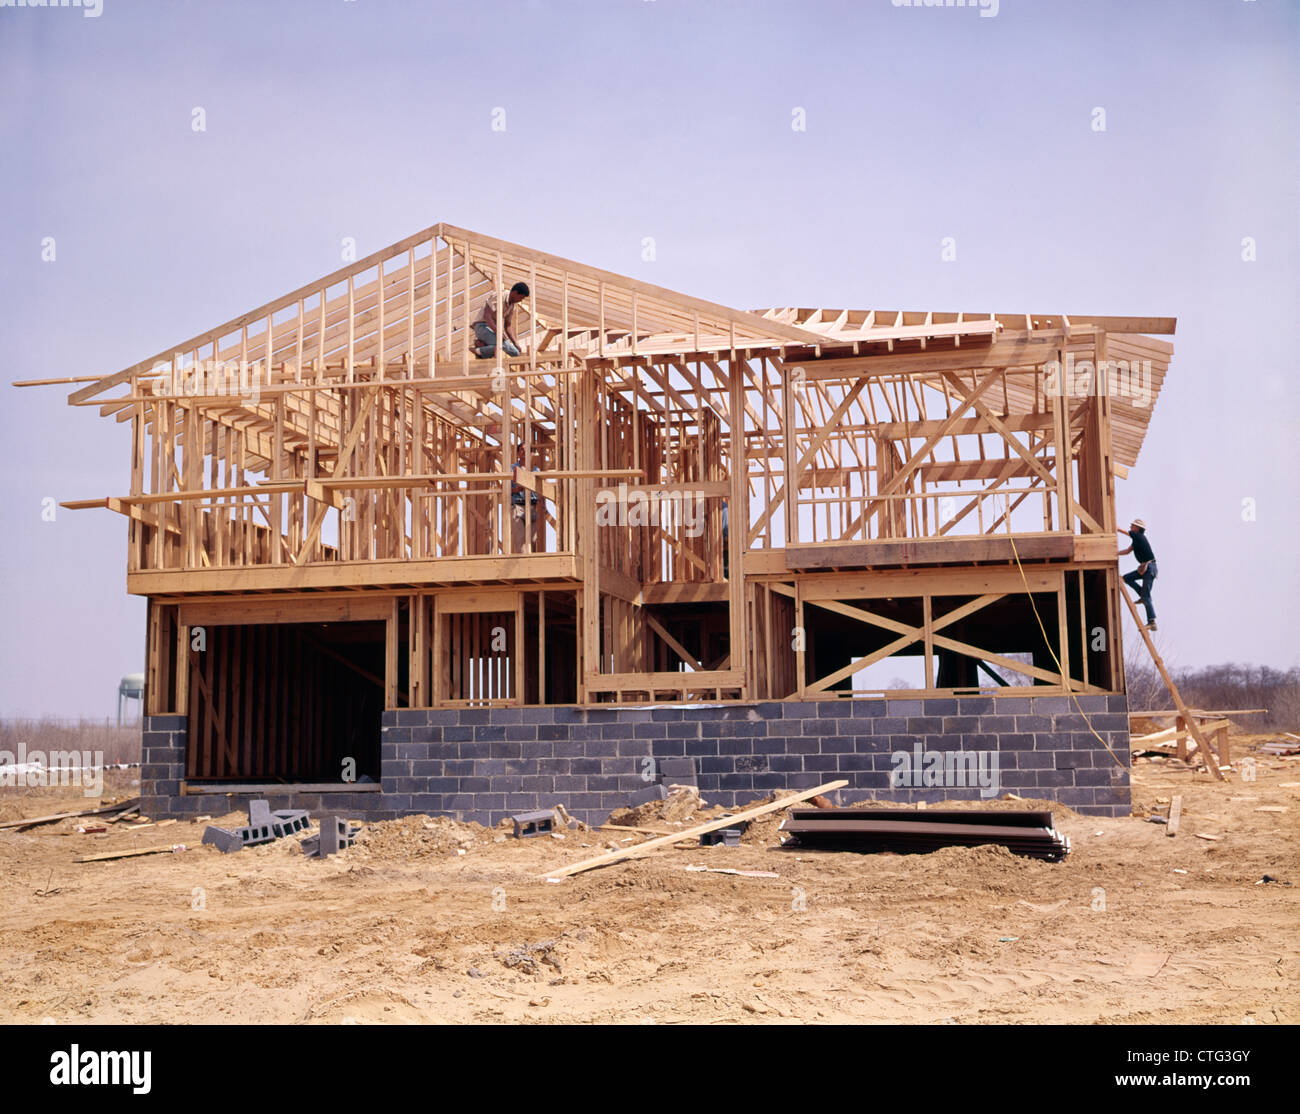 Cinder block house stock photos cinder block house stock for Concrete home construction